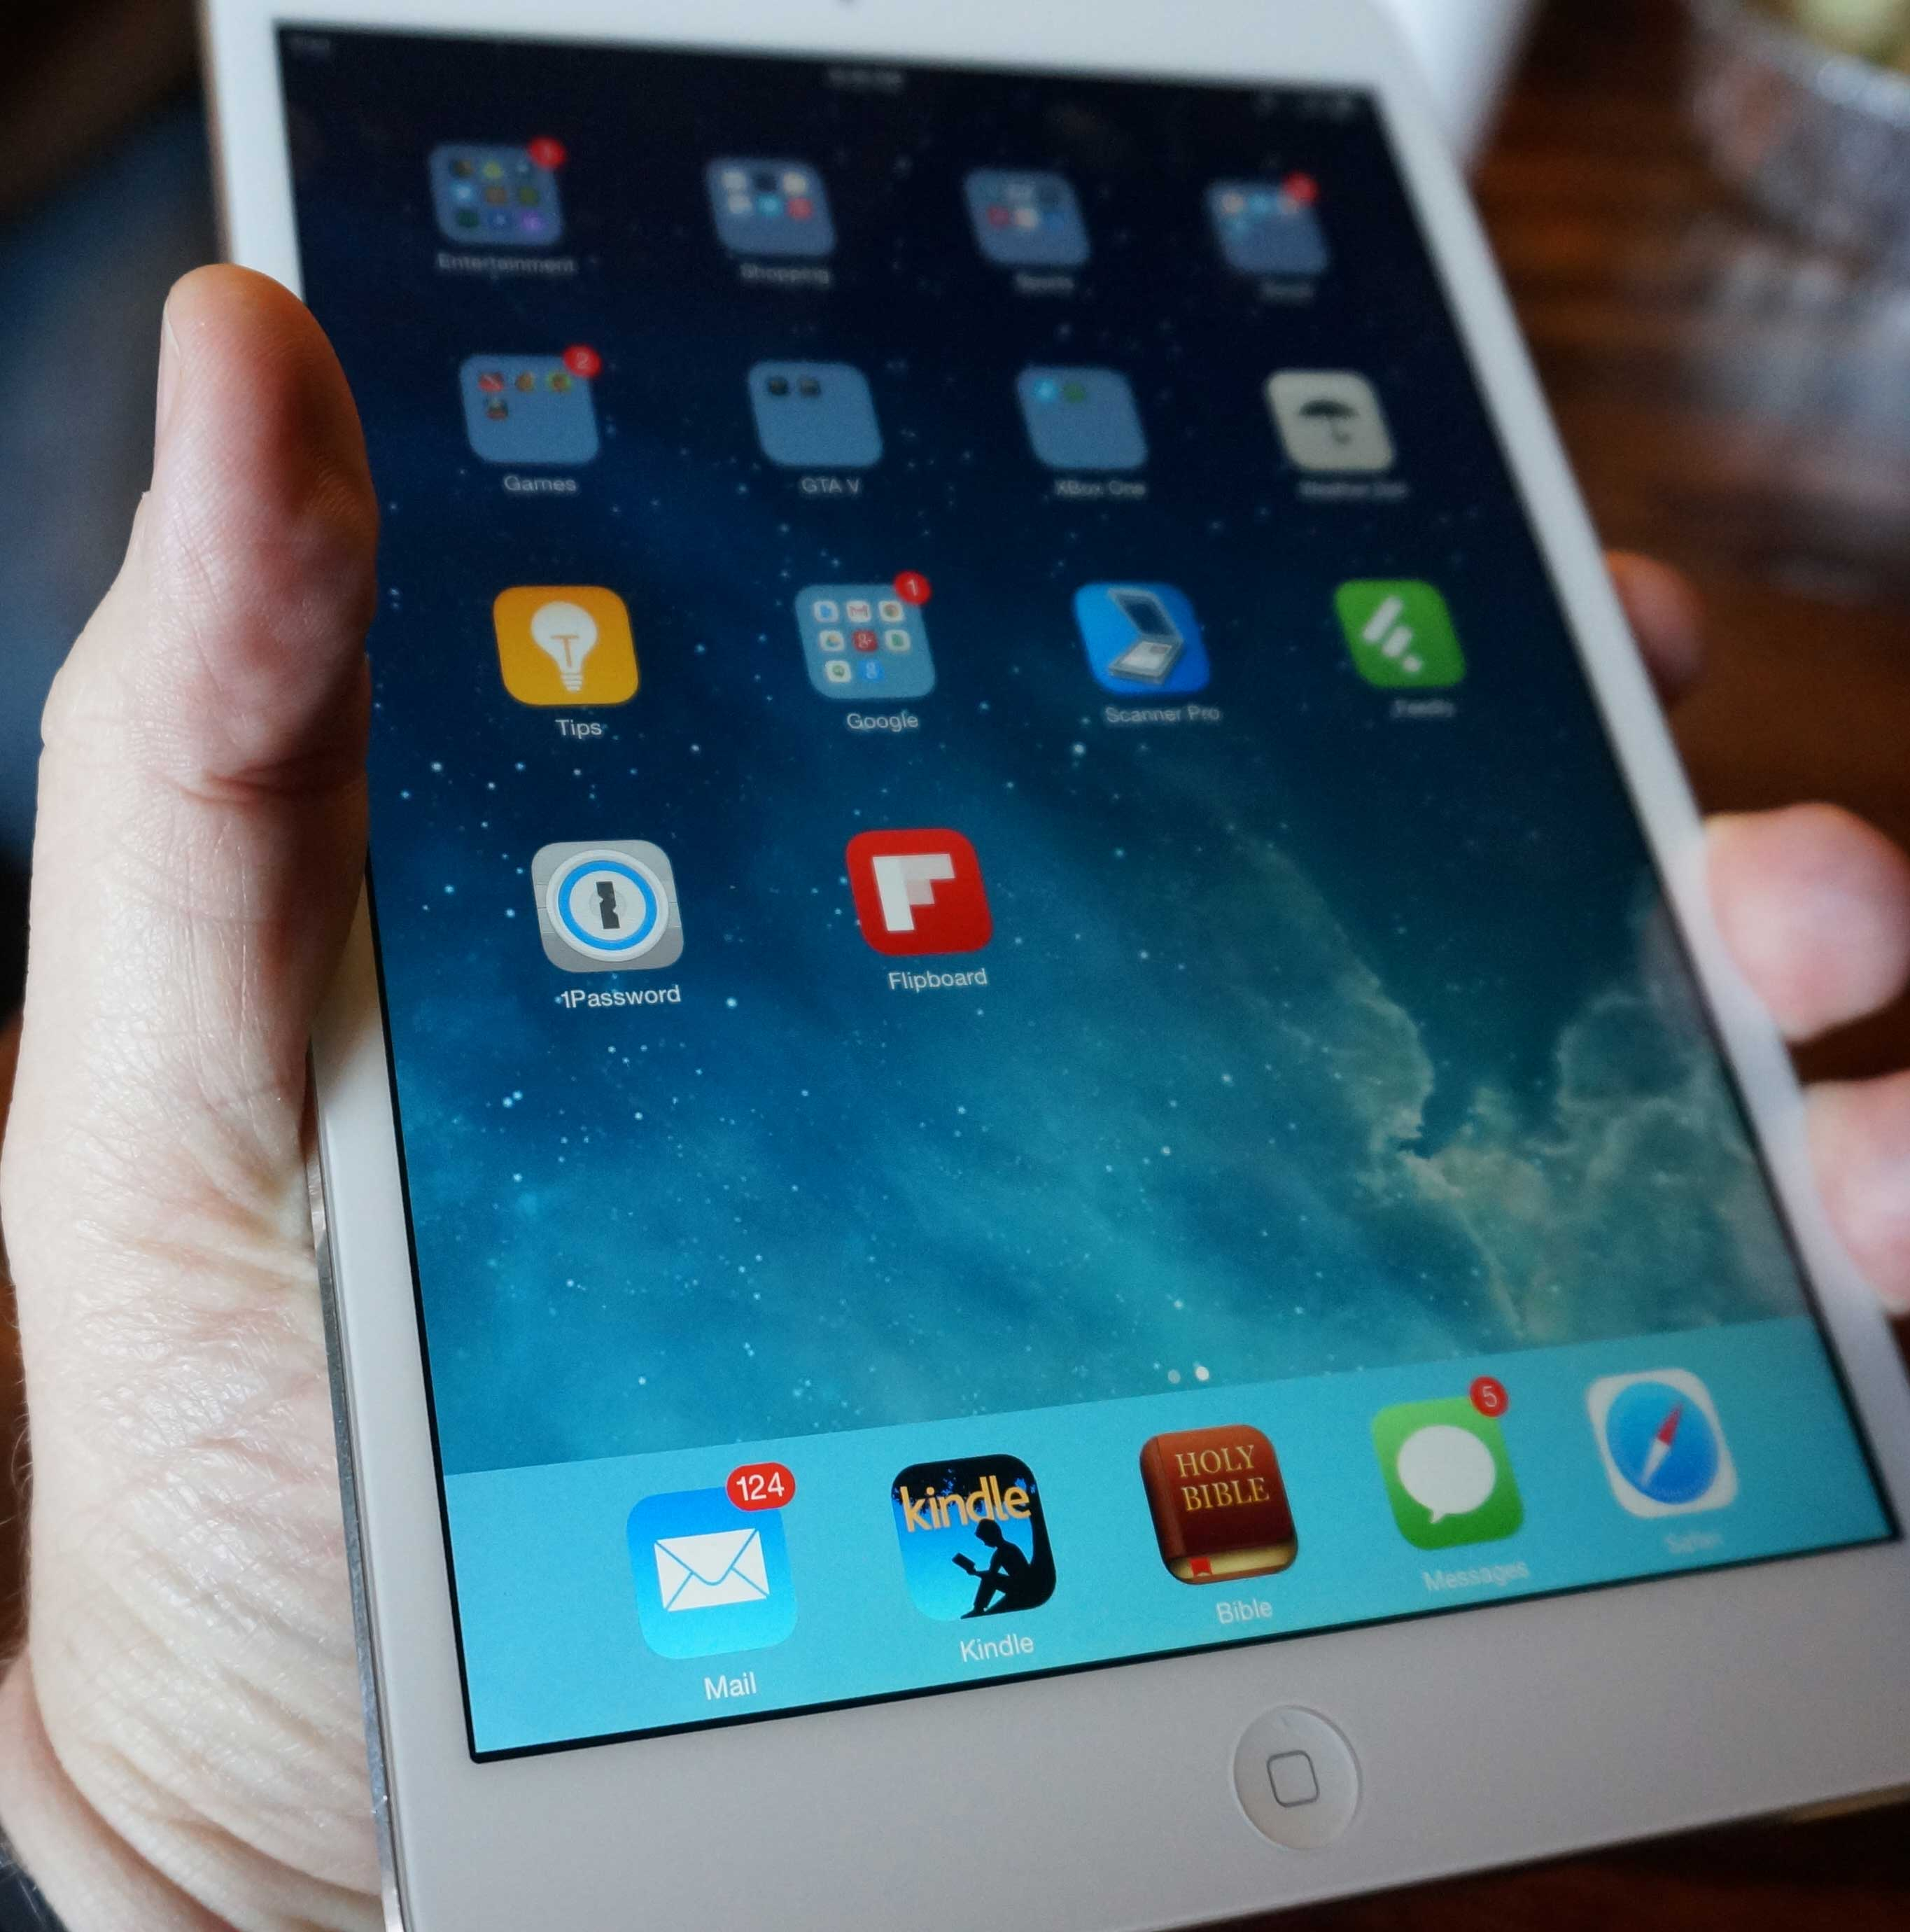 0b4c1408b89 Does an iPad mini Work Better than an iPhone 6 Plus for Office?